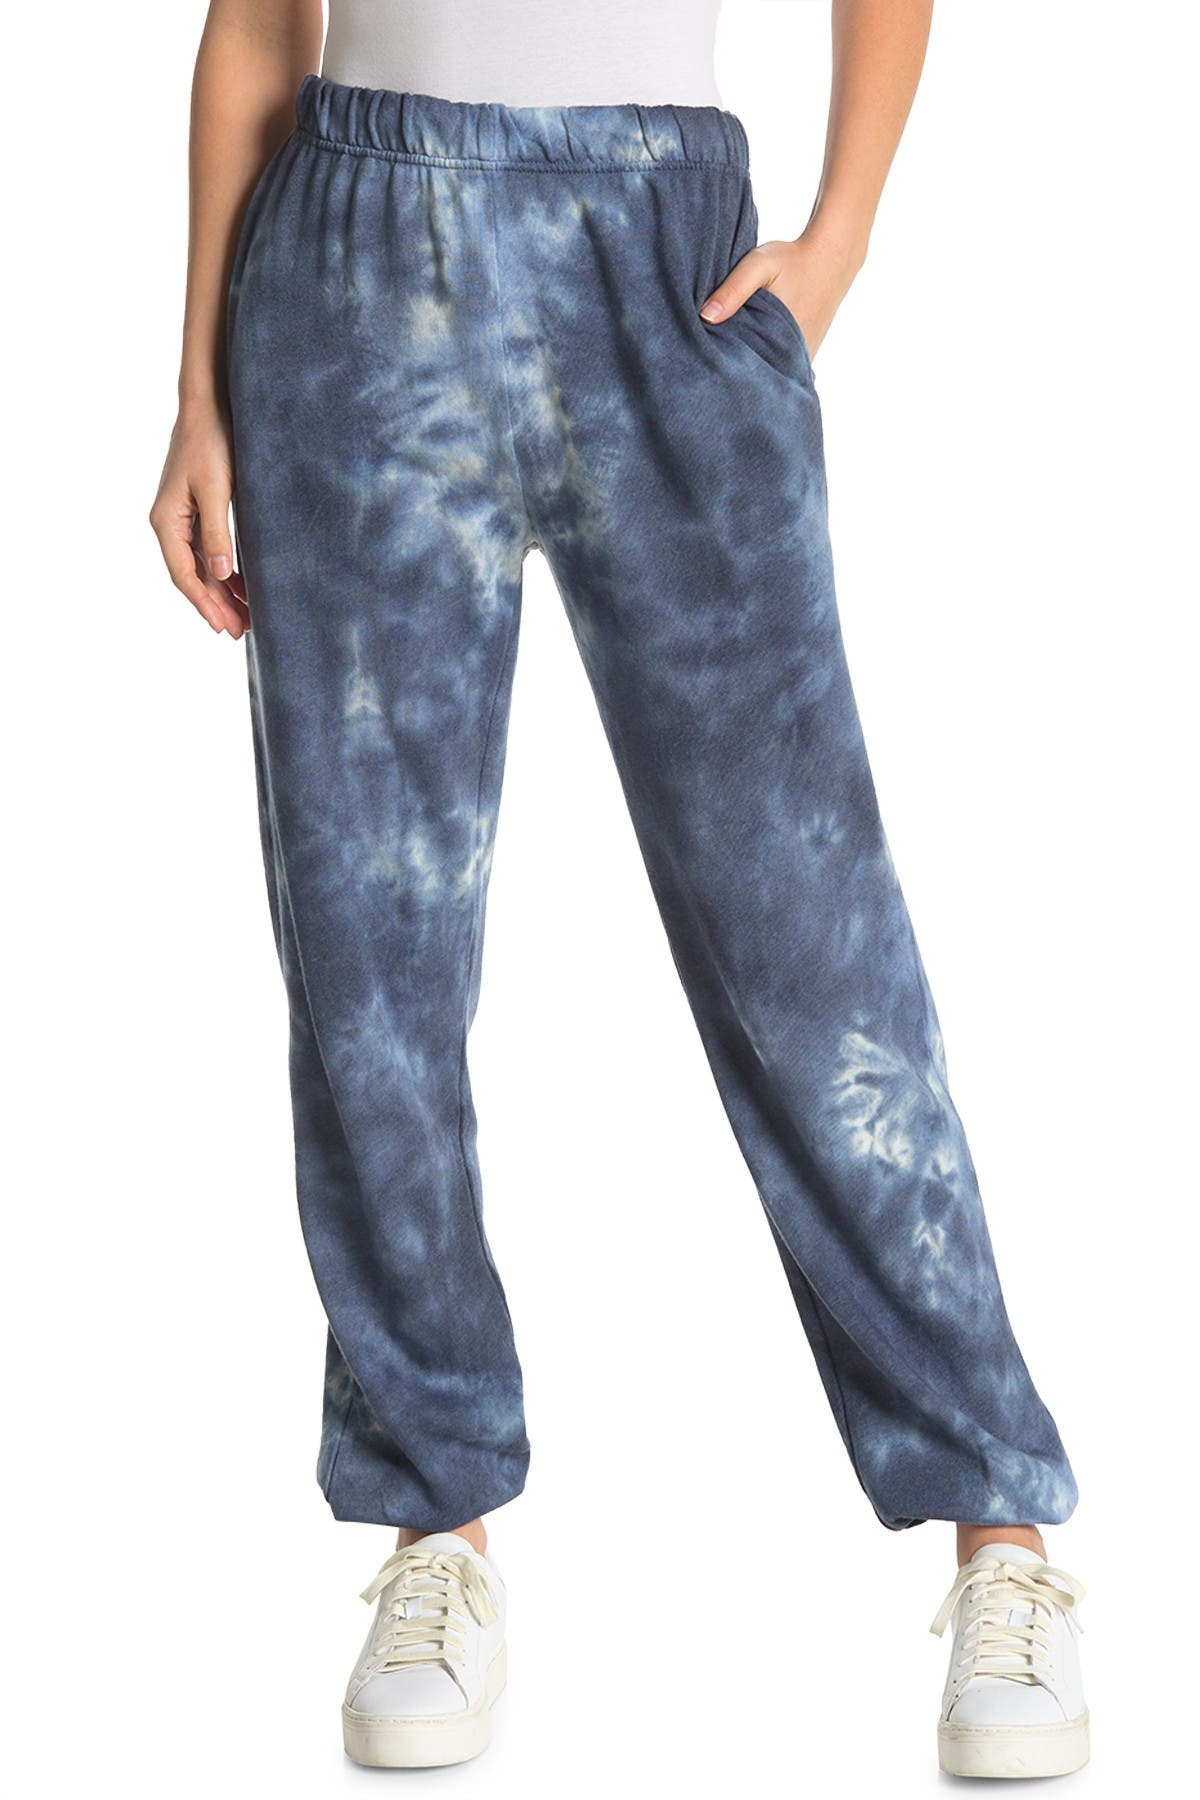 Image of Threads 4 Thought Tie Dye Joggers